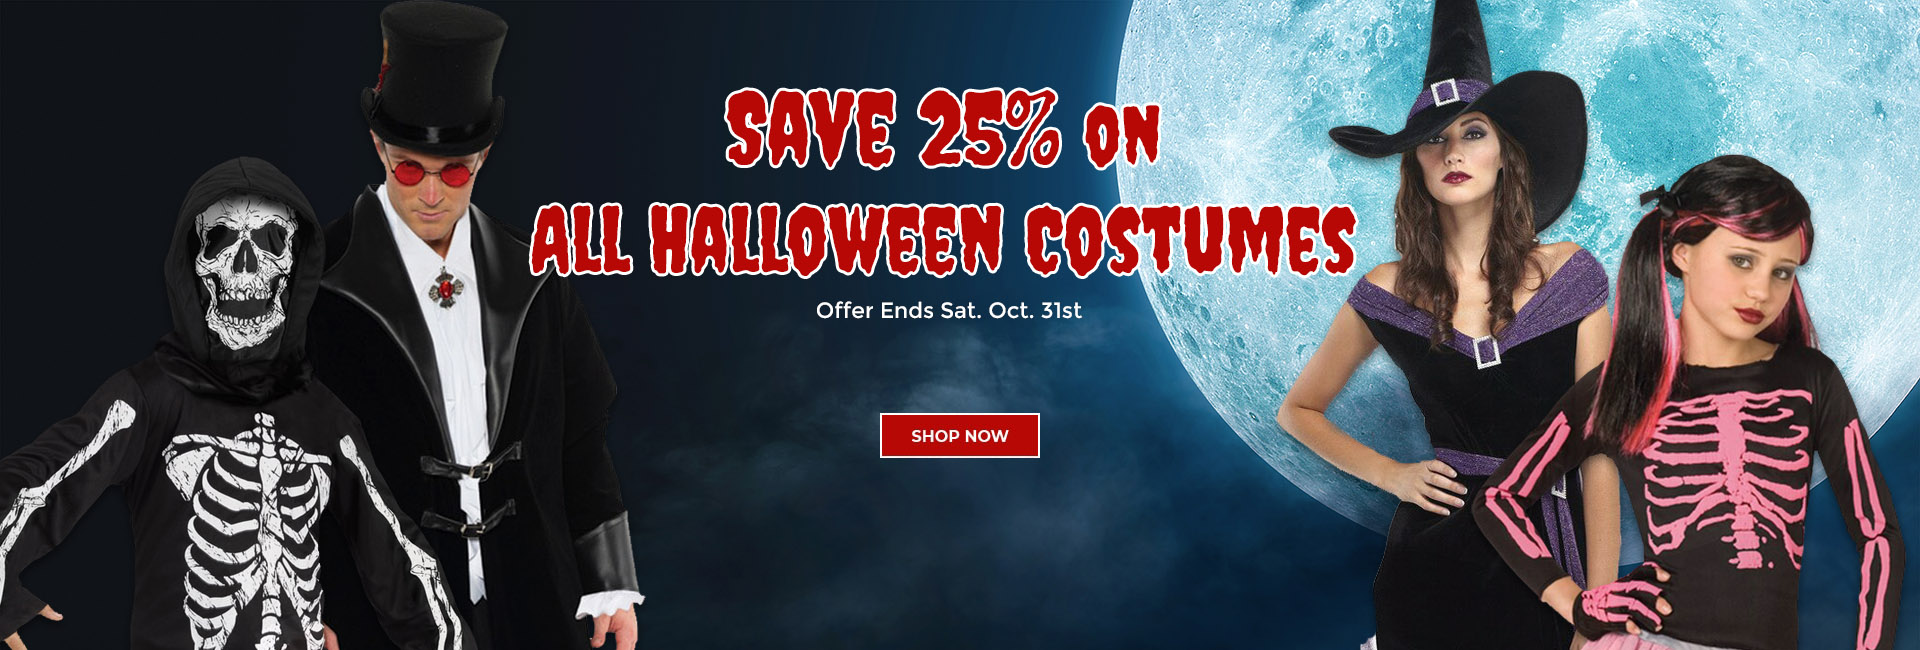 25% Off On All Halloween Costumes